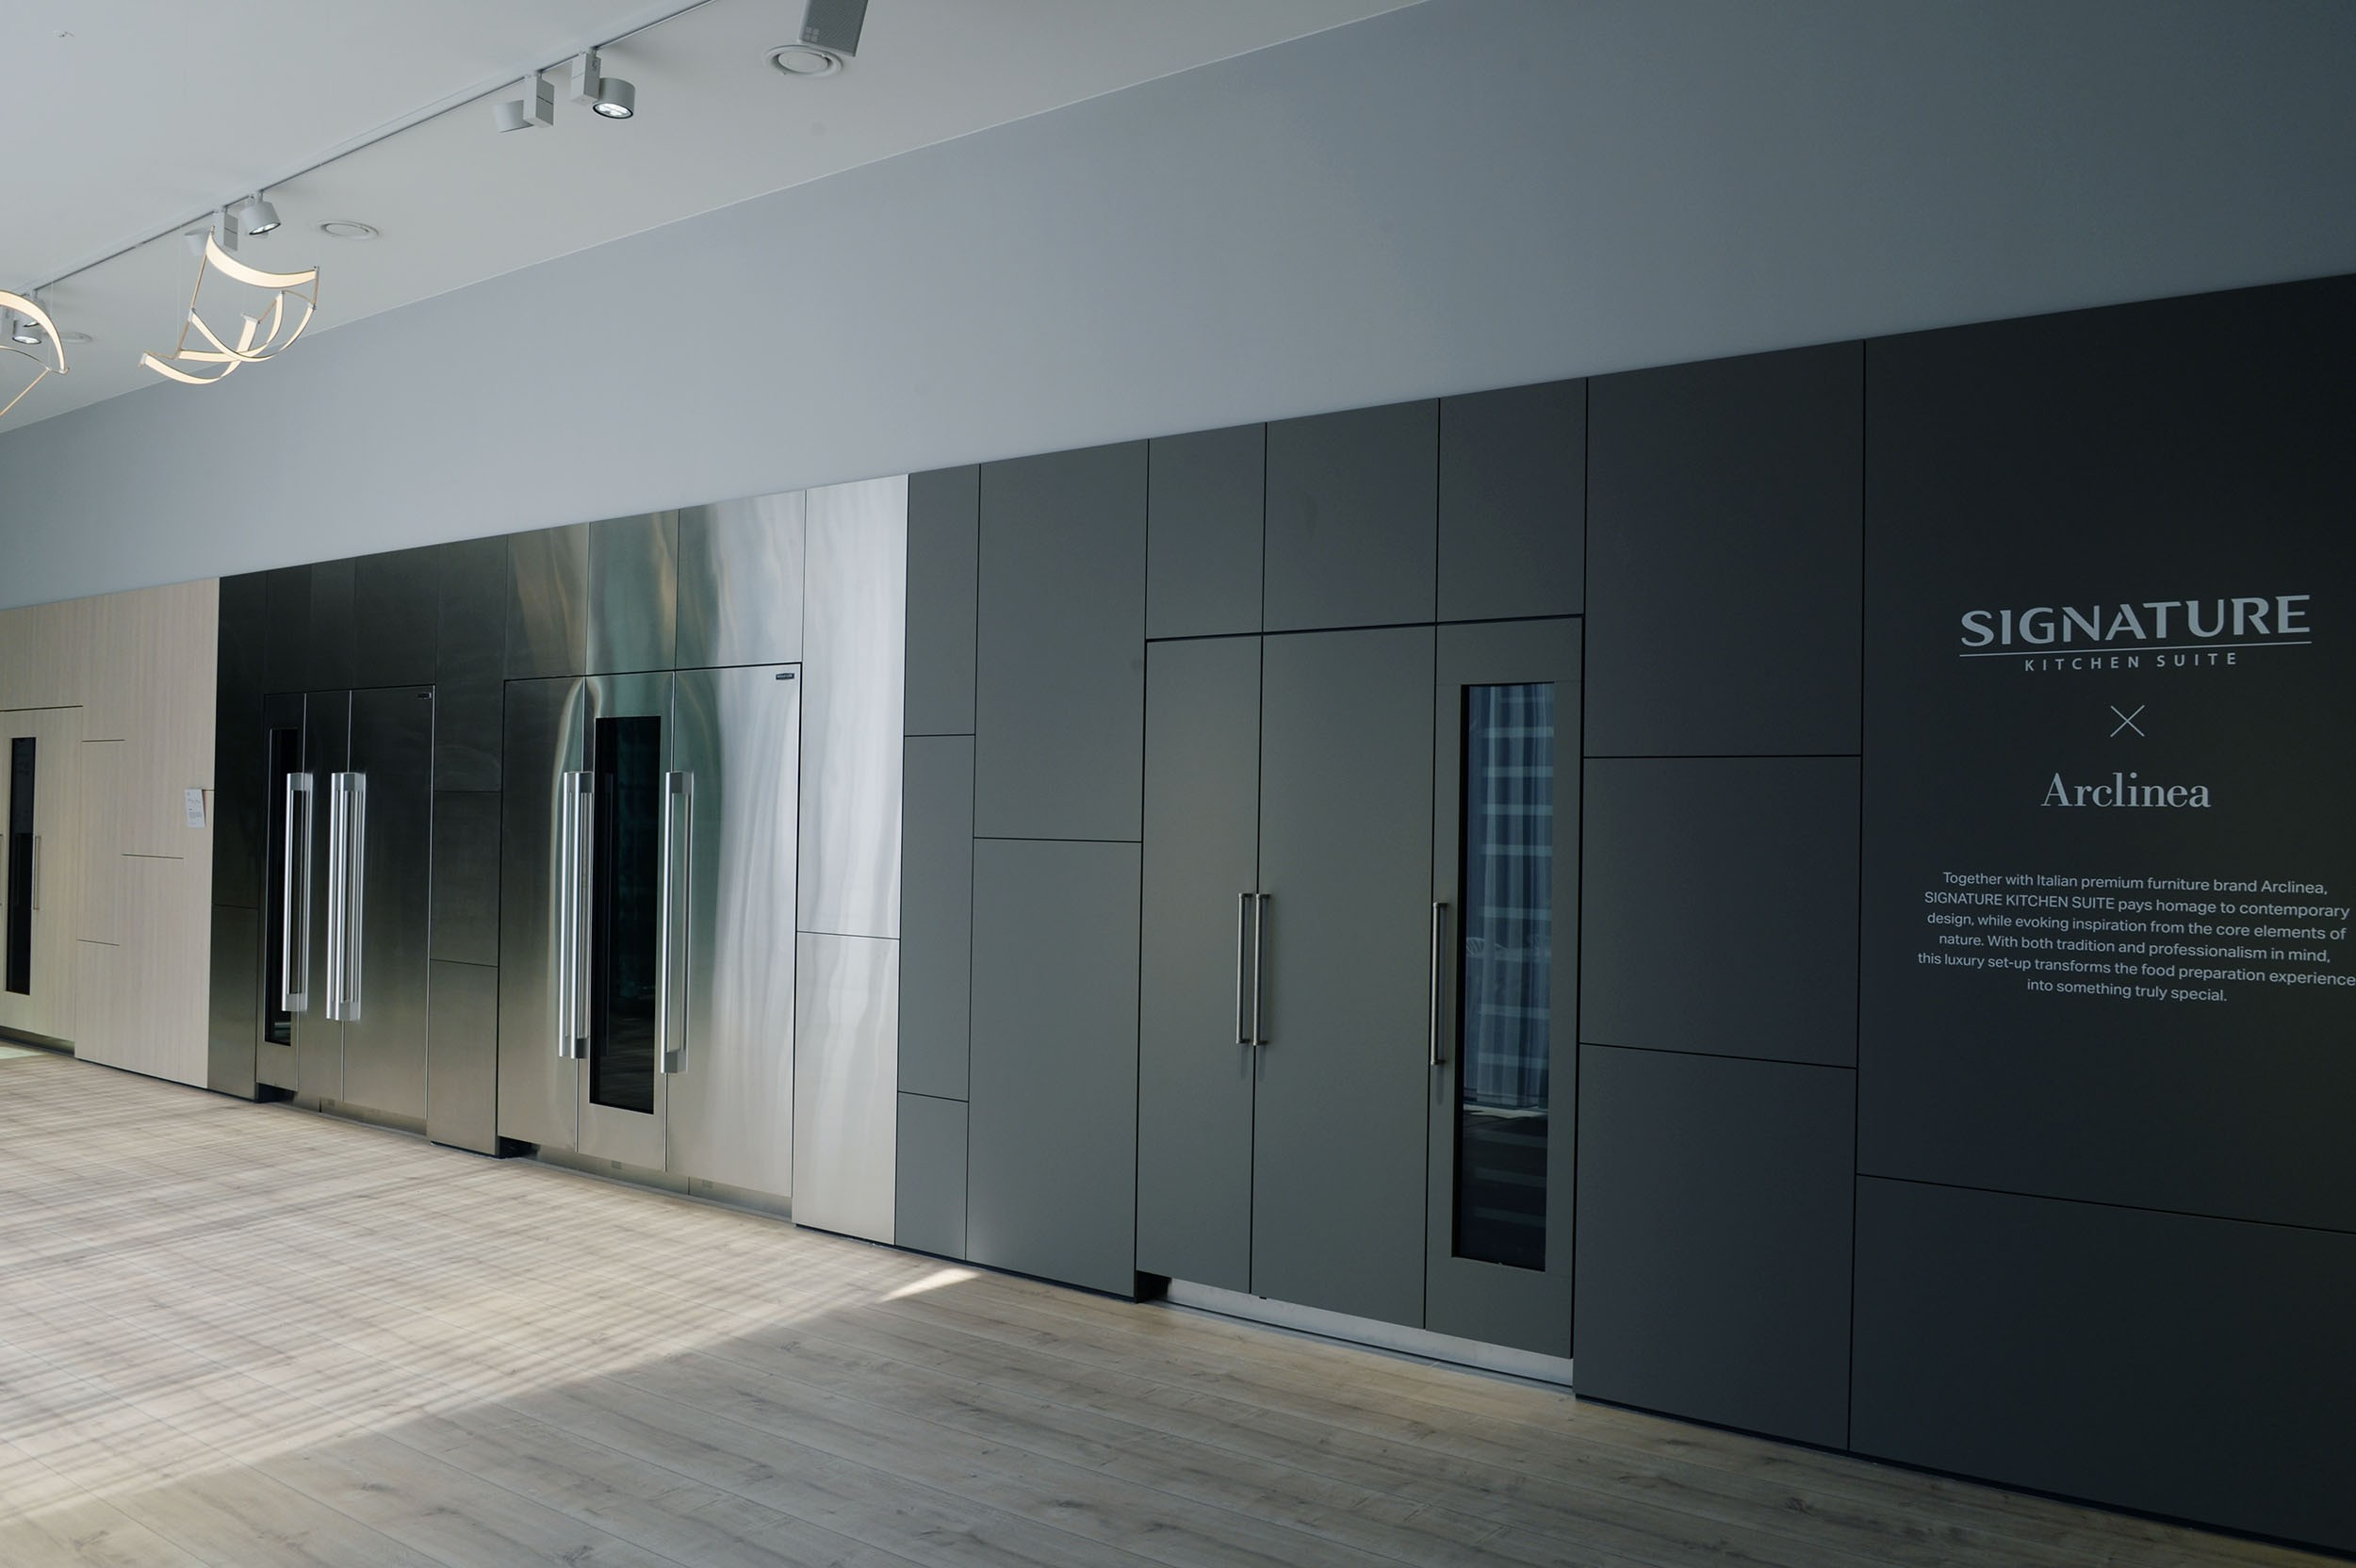 SIGNATURE KITCHEN SUITE's exhibition hall cooperated with Arclinea at IFA 2018